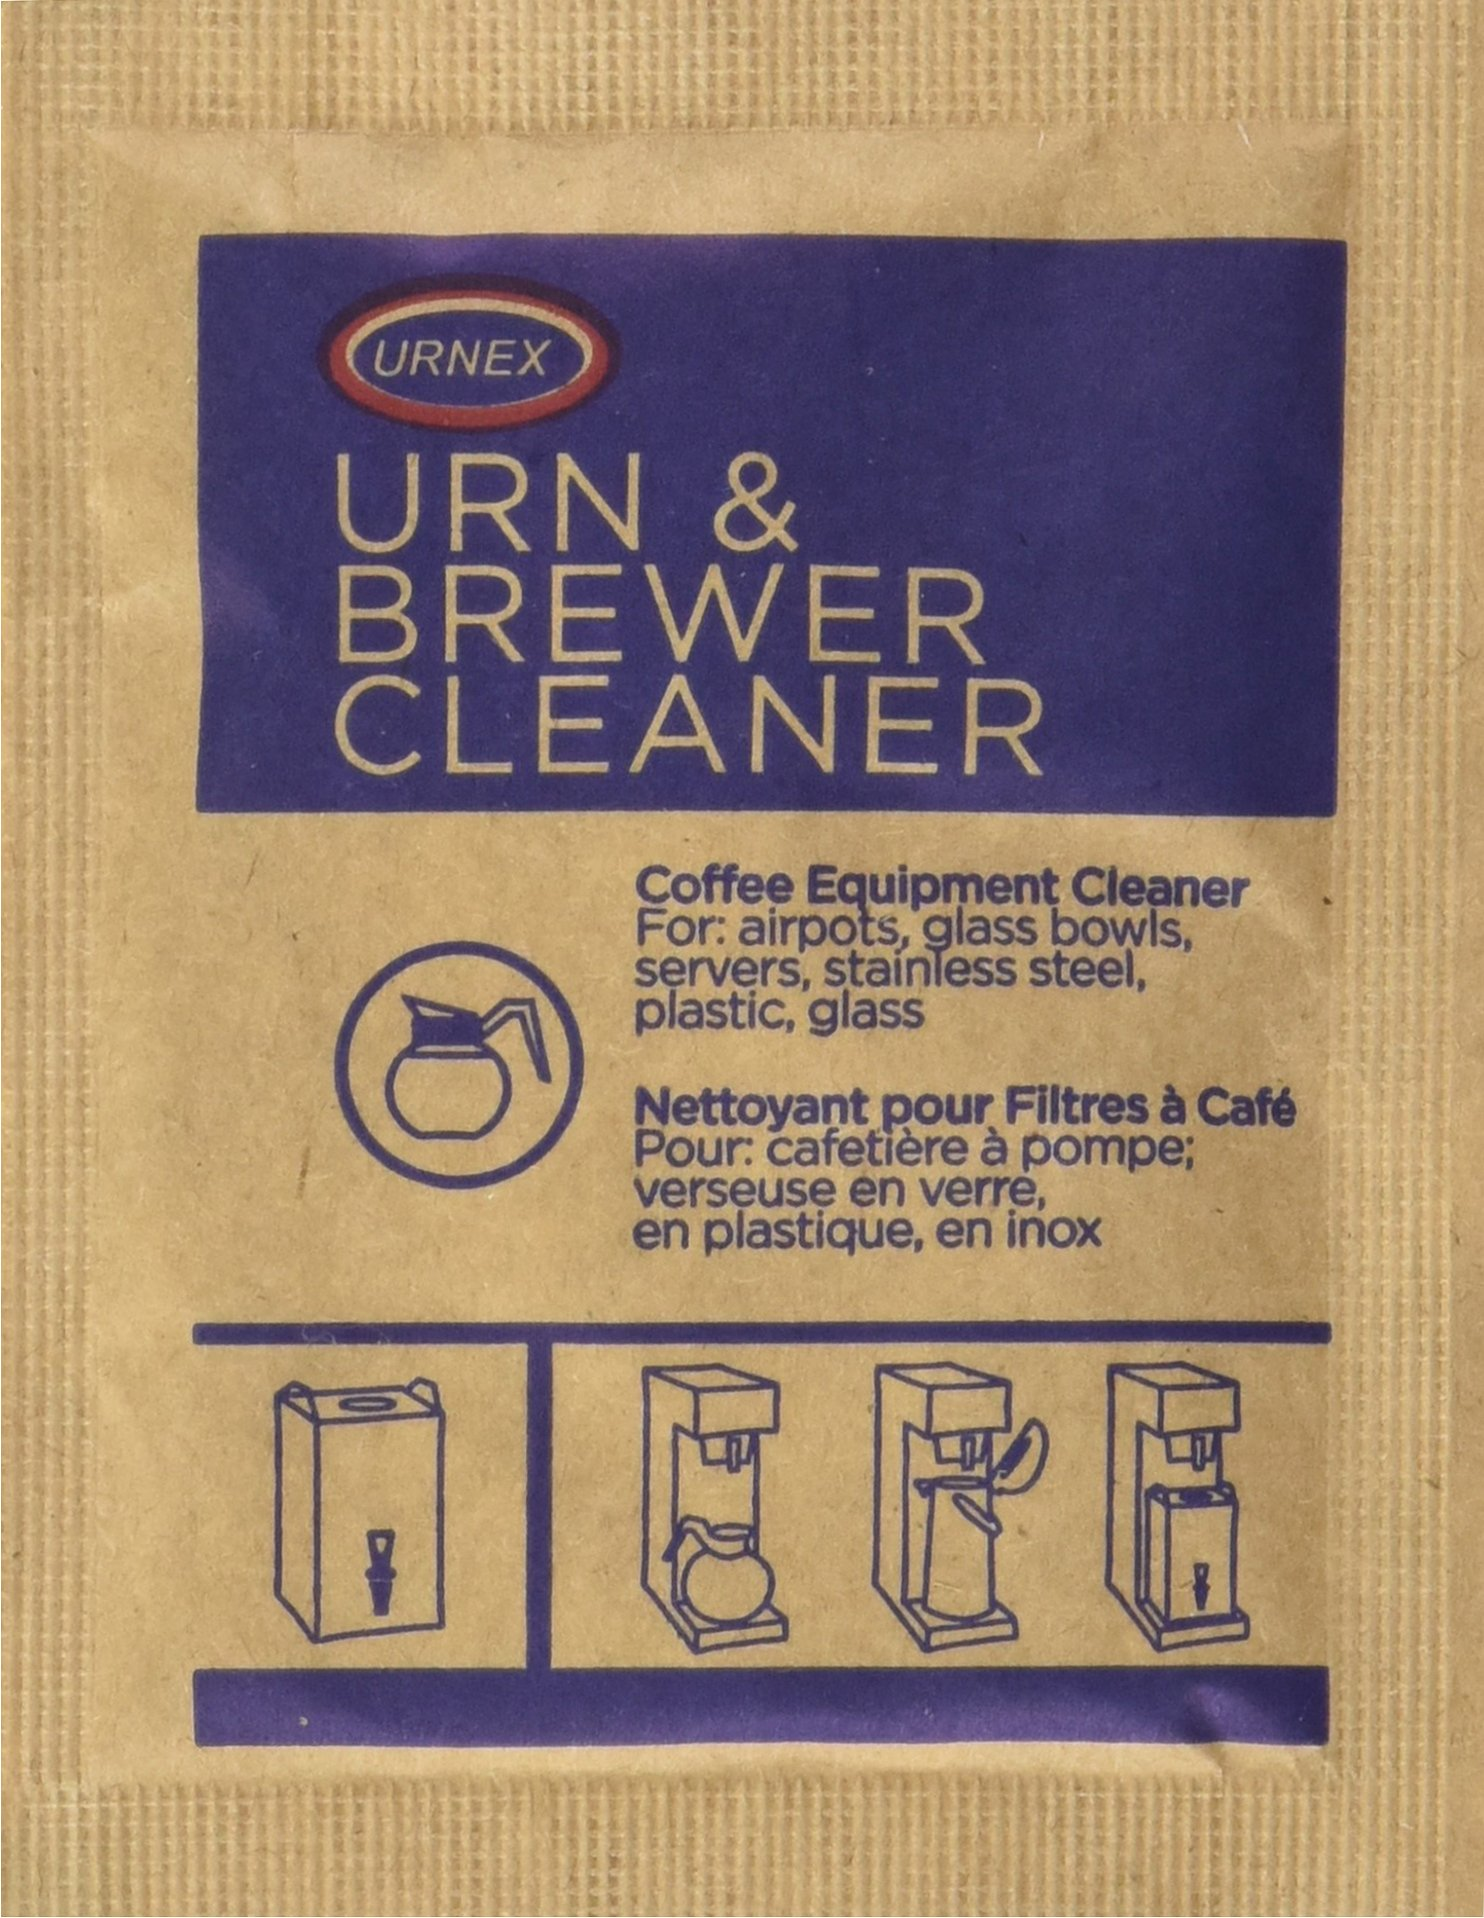 Urnex Original Urn and Brewer Cleaner - 100 [1 Ounce Packets] - Professional Coffee Equipment Cleaner For Air Pot Glass Bowl Server Stainless Steel Plastic Glass by Urnex